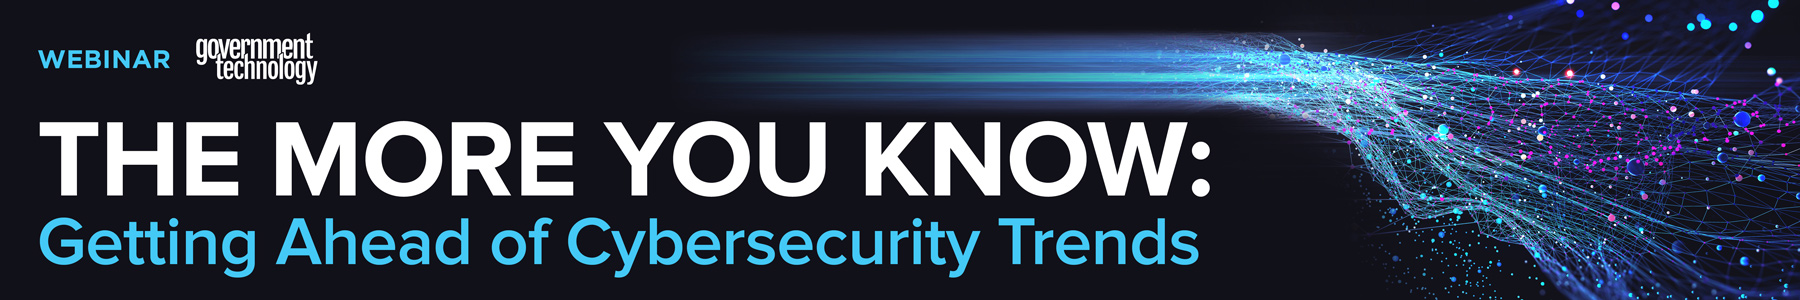 The More You Know: Getting Ahead of Cybersecurity Trends